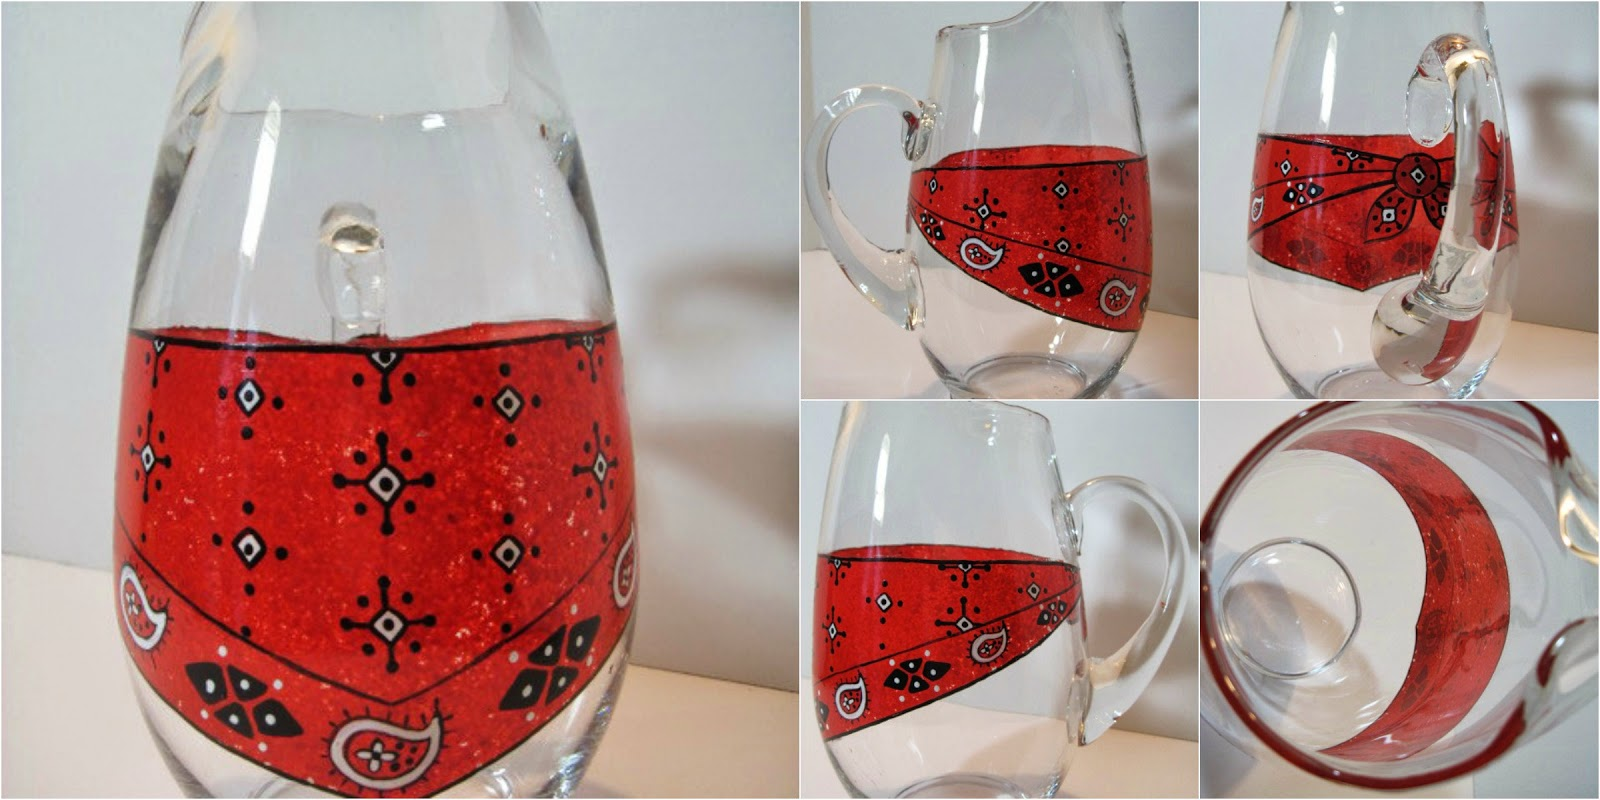 Bandanna Painted Pitcher via Kudos Kitchen By Renee